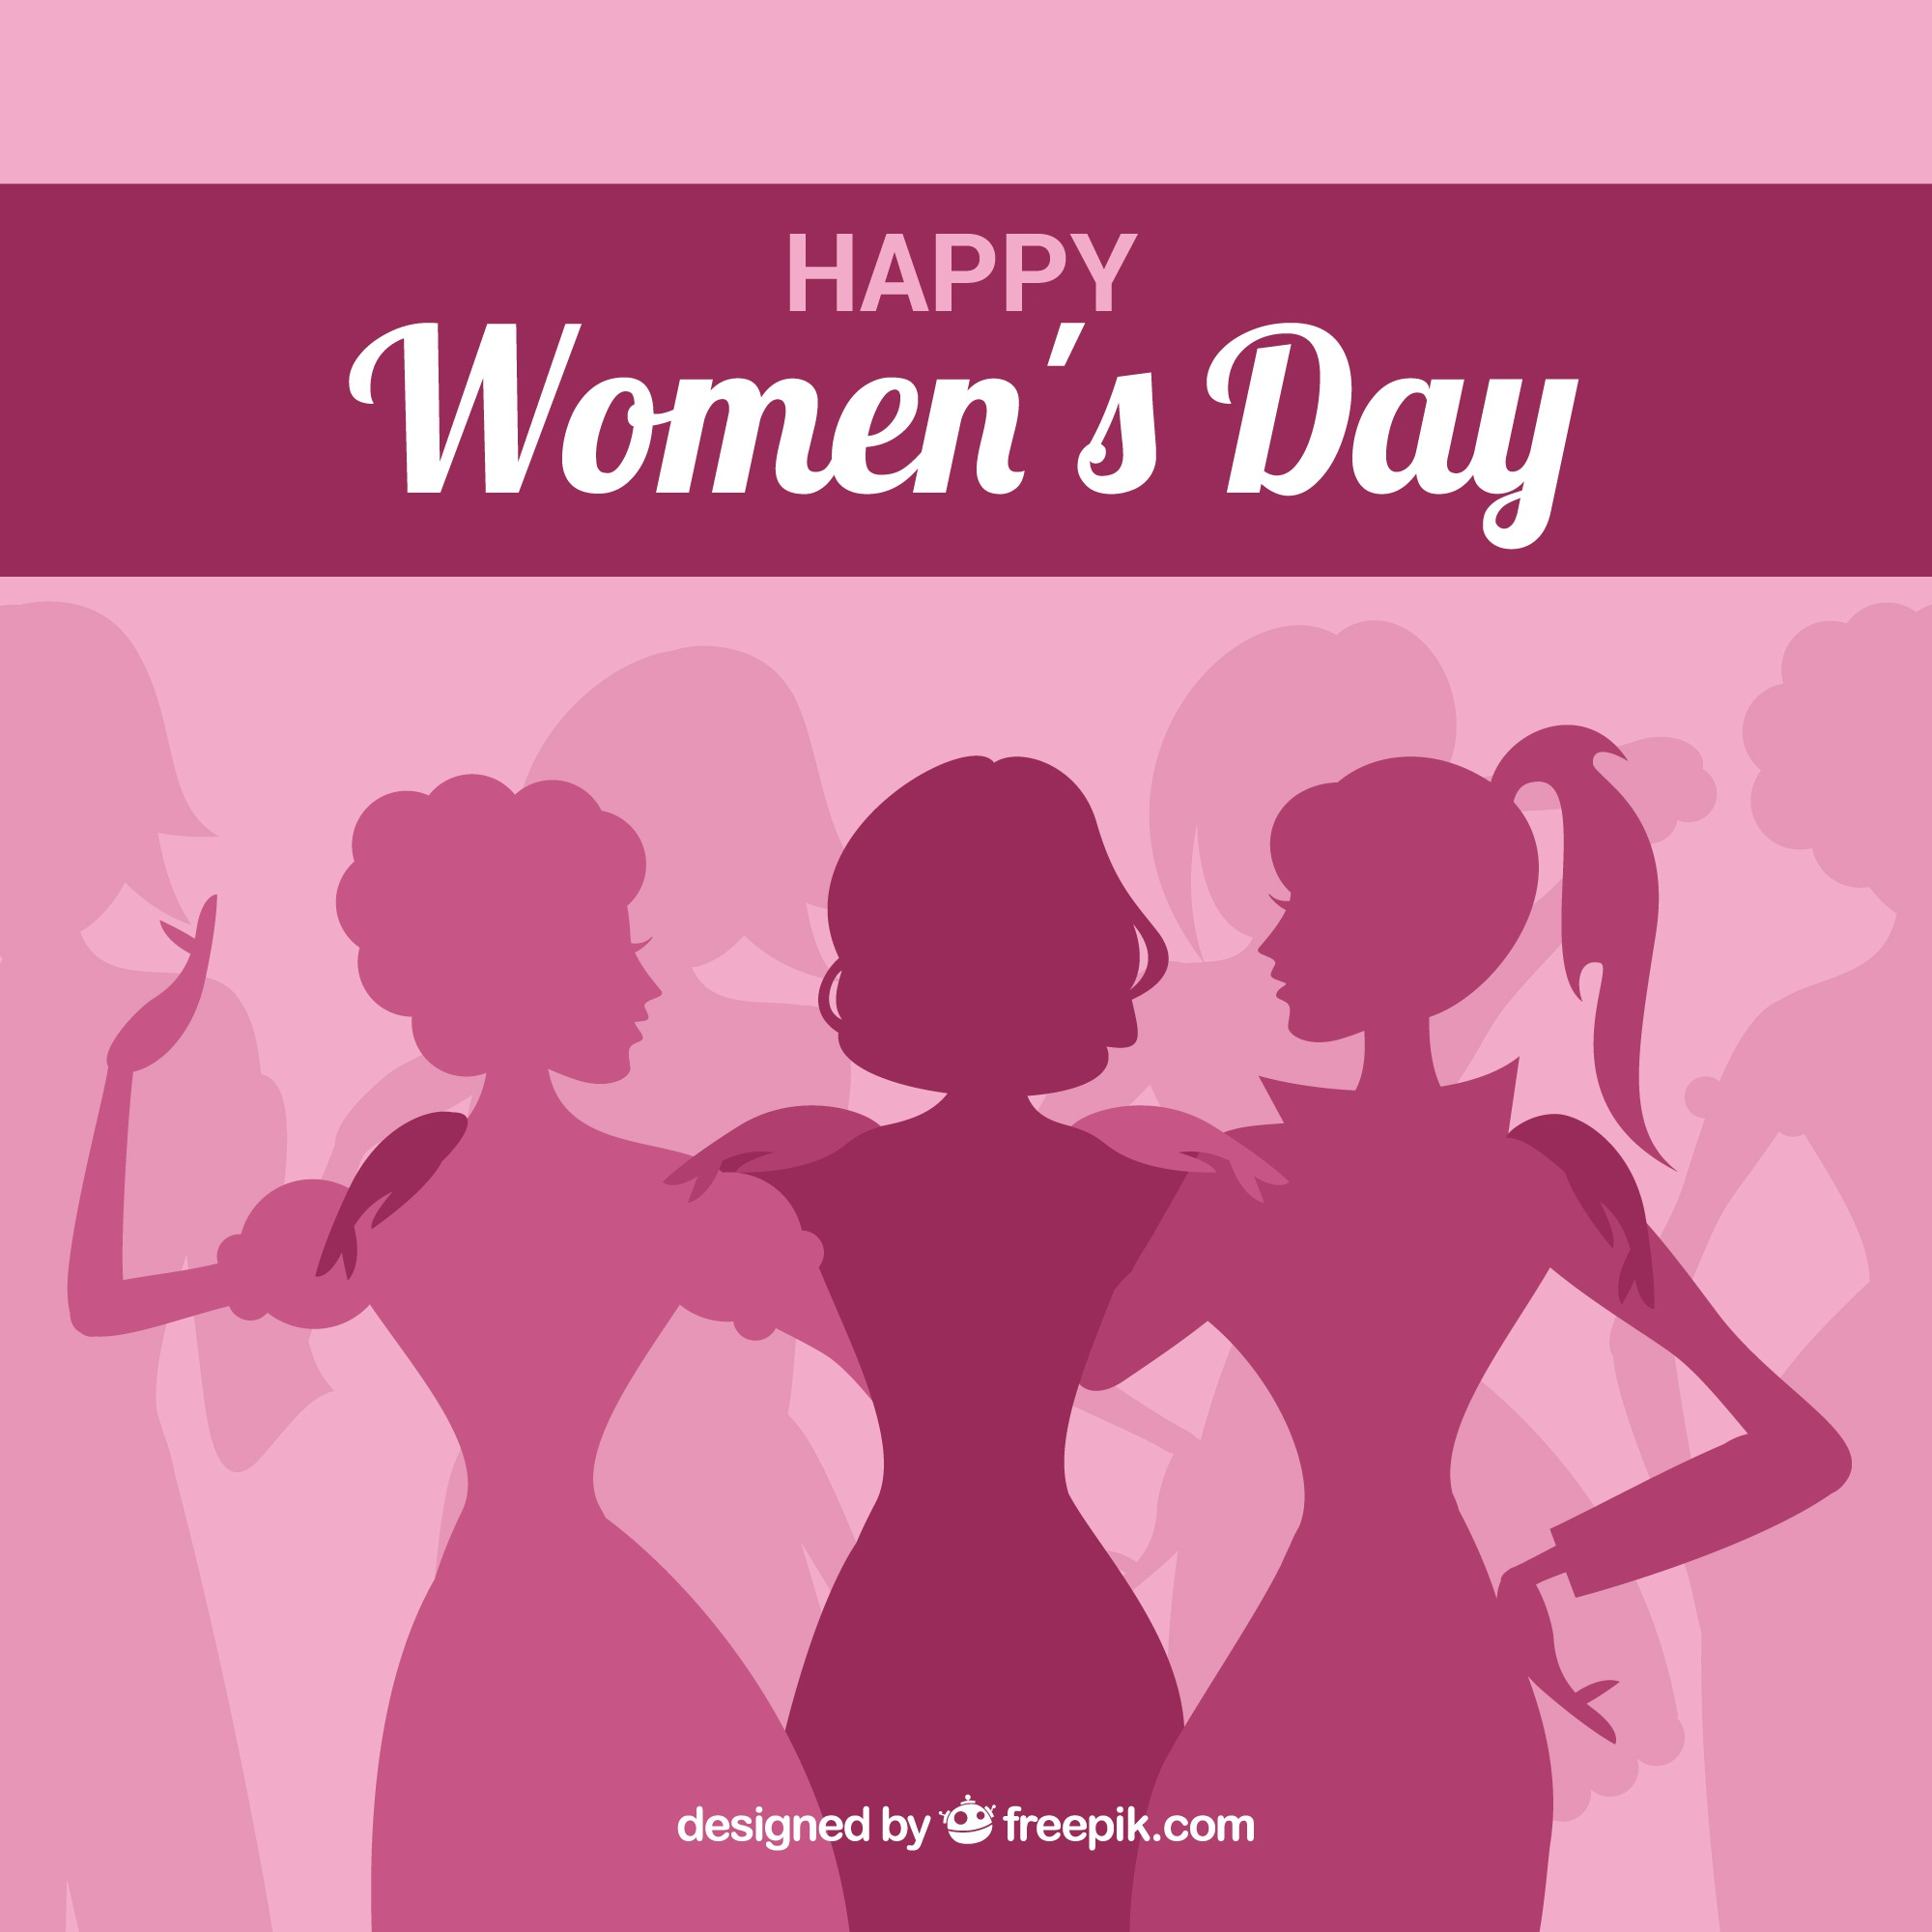 Pink women's day background